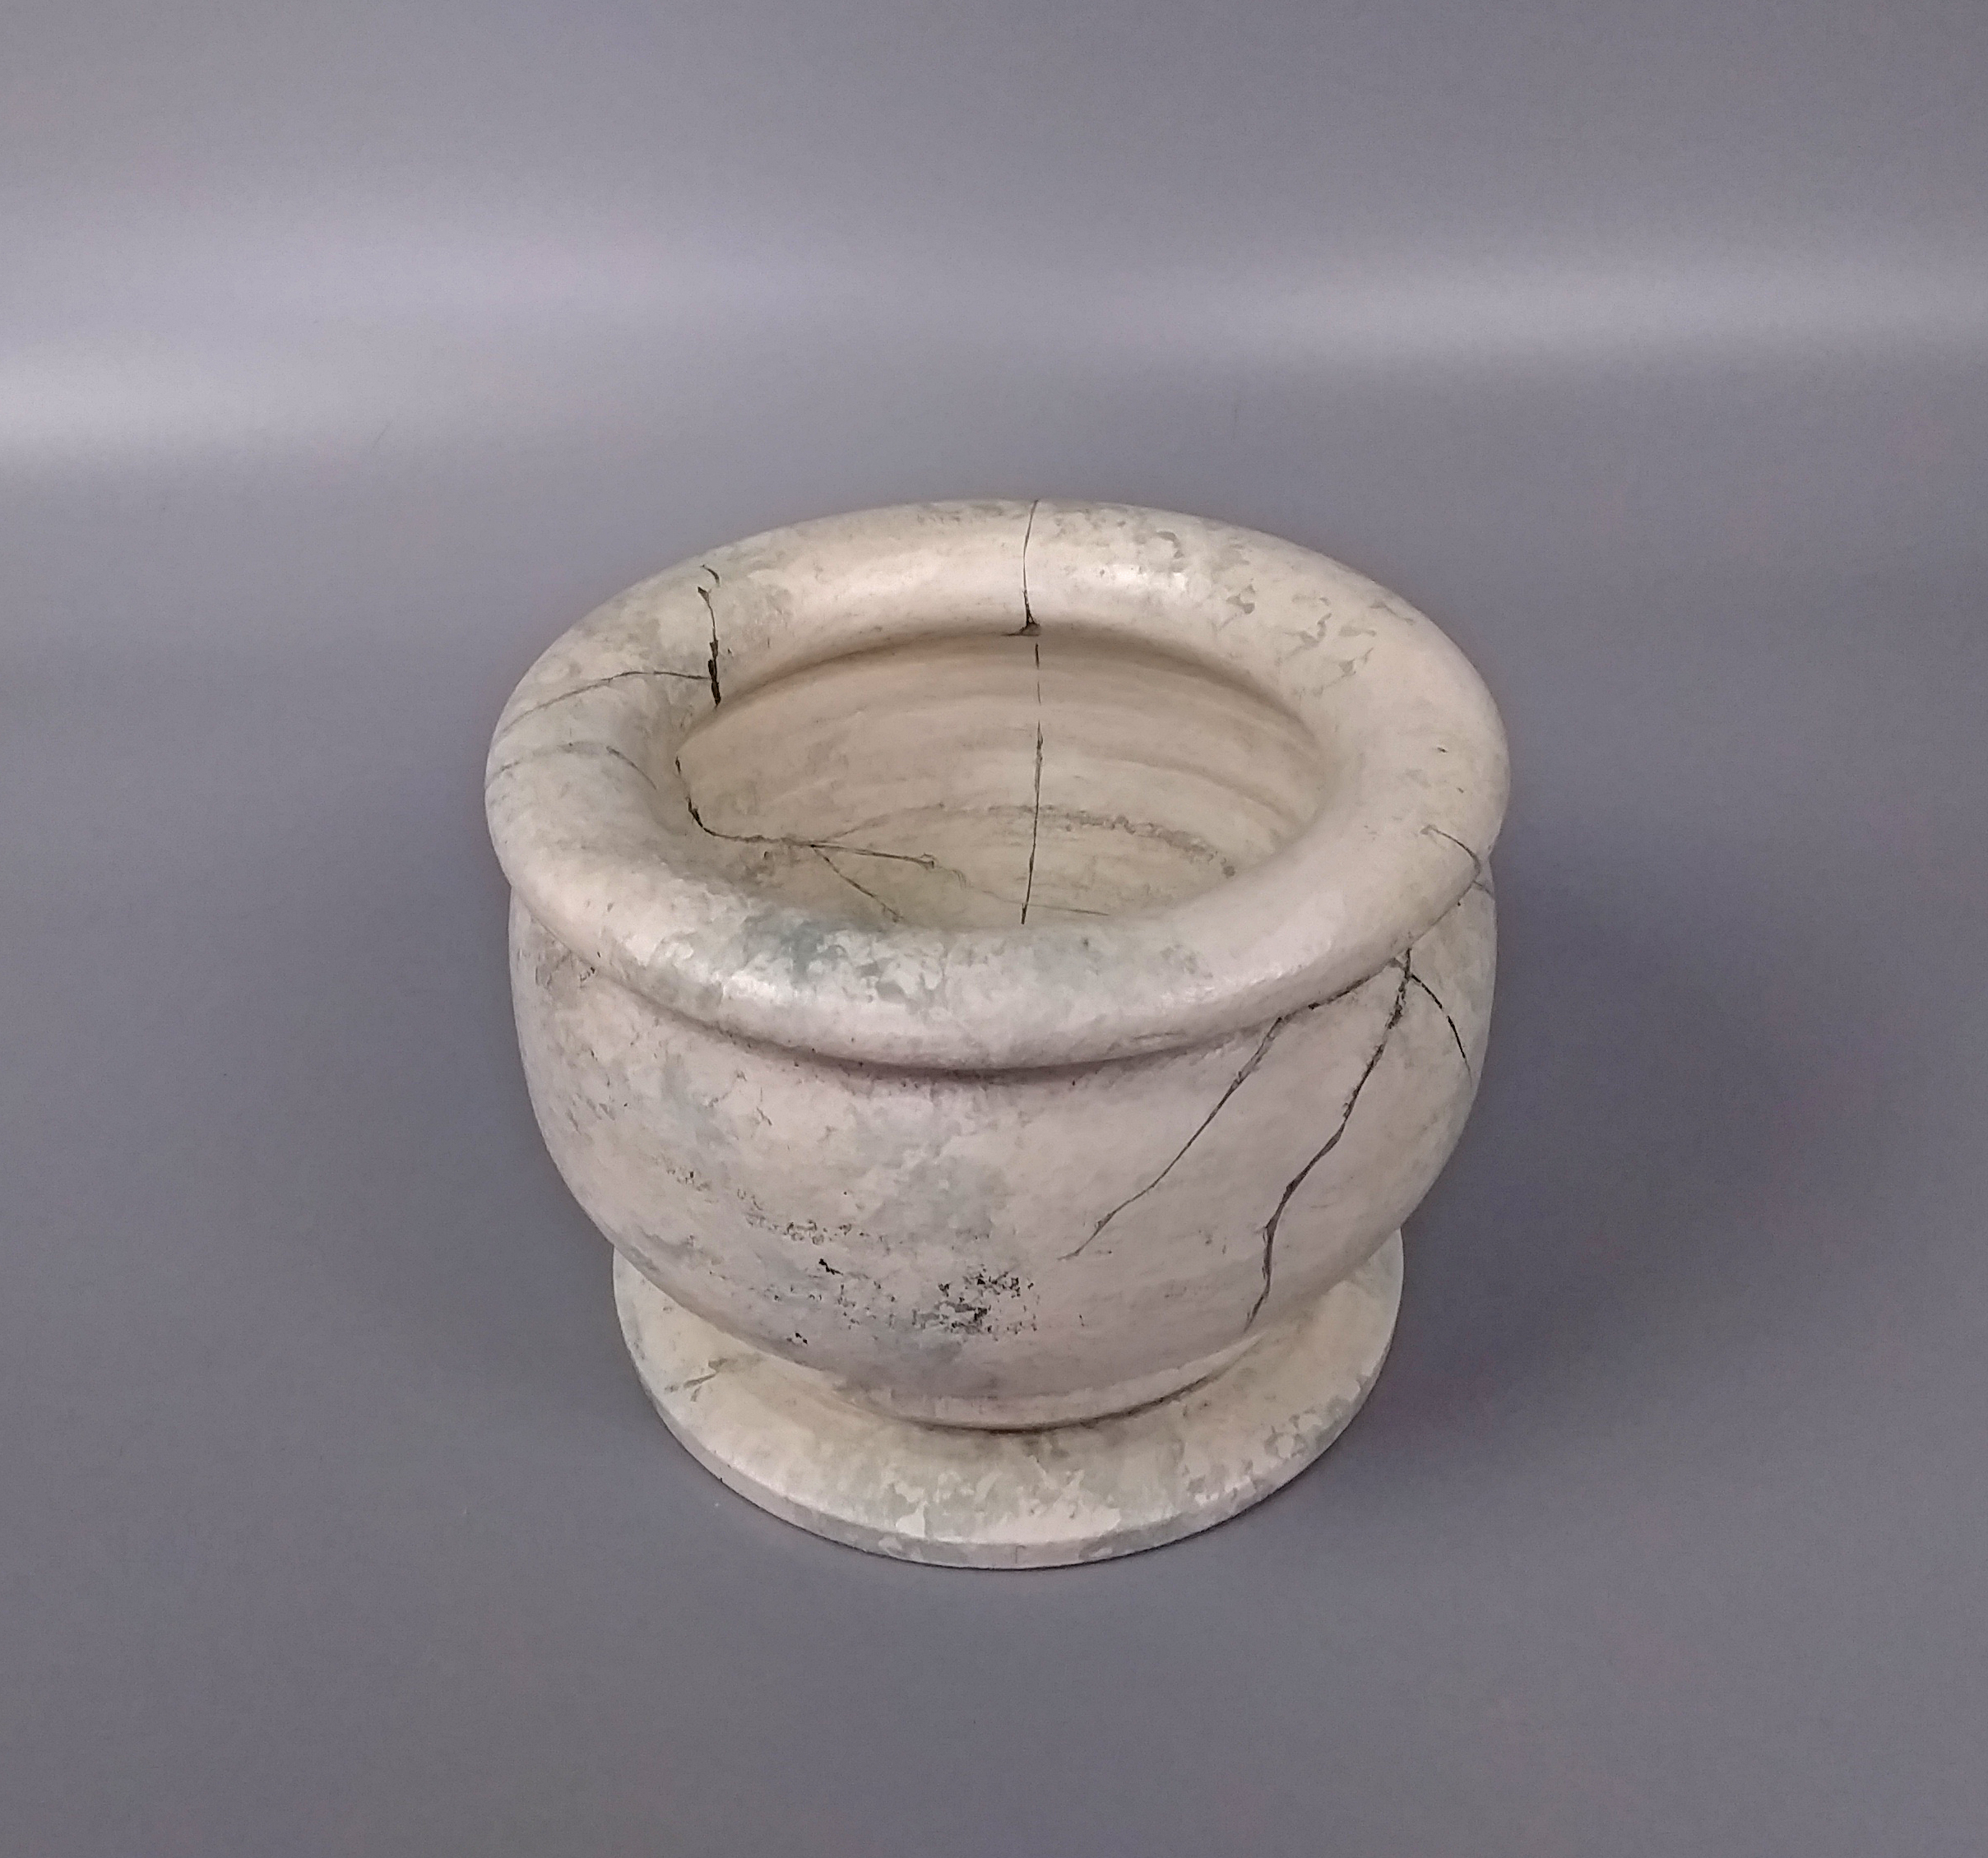 Cracked Marble Effect Bowl